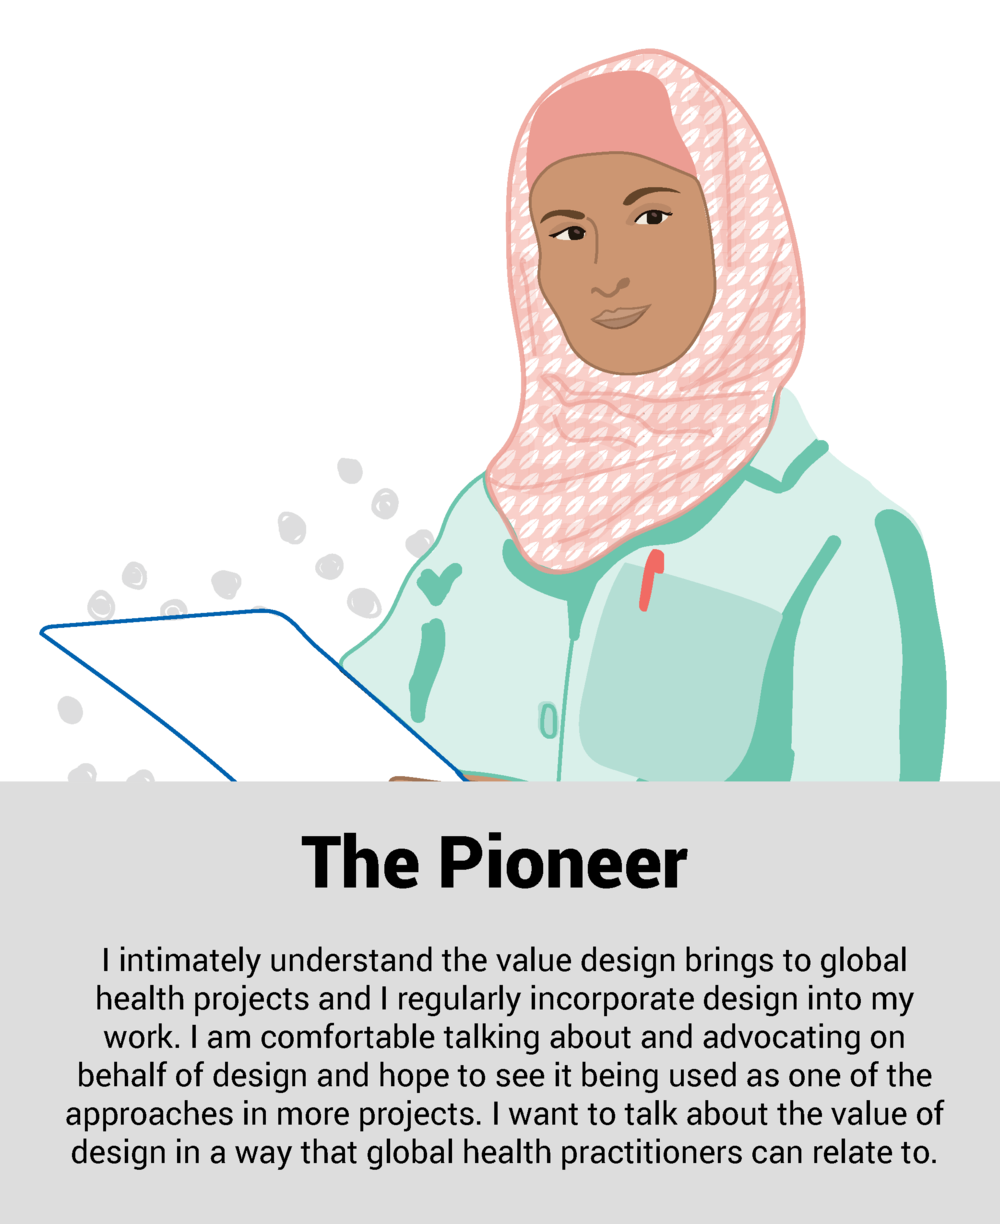 """""""I intimately understand the value design brings to global health projects and I regularly incorporate design into my work. I am comfortable talking about and advocating on behalf of design and hope to see it being used as one of the approaches in more projects. I want to talk about the value of design in a way that global health practitioners can relate to""""."""